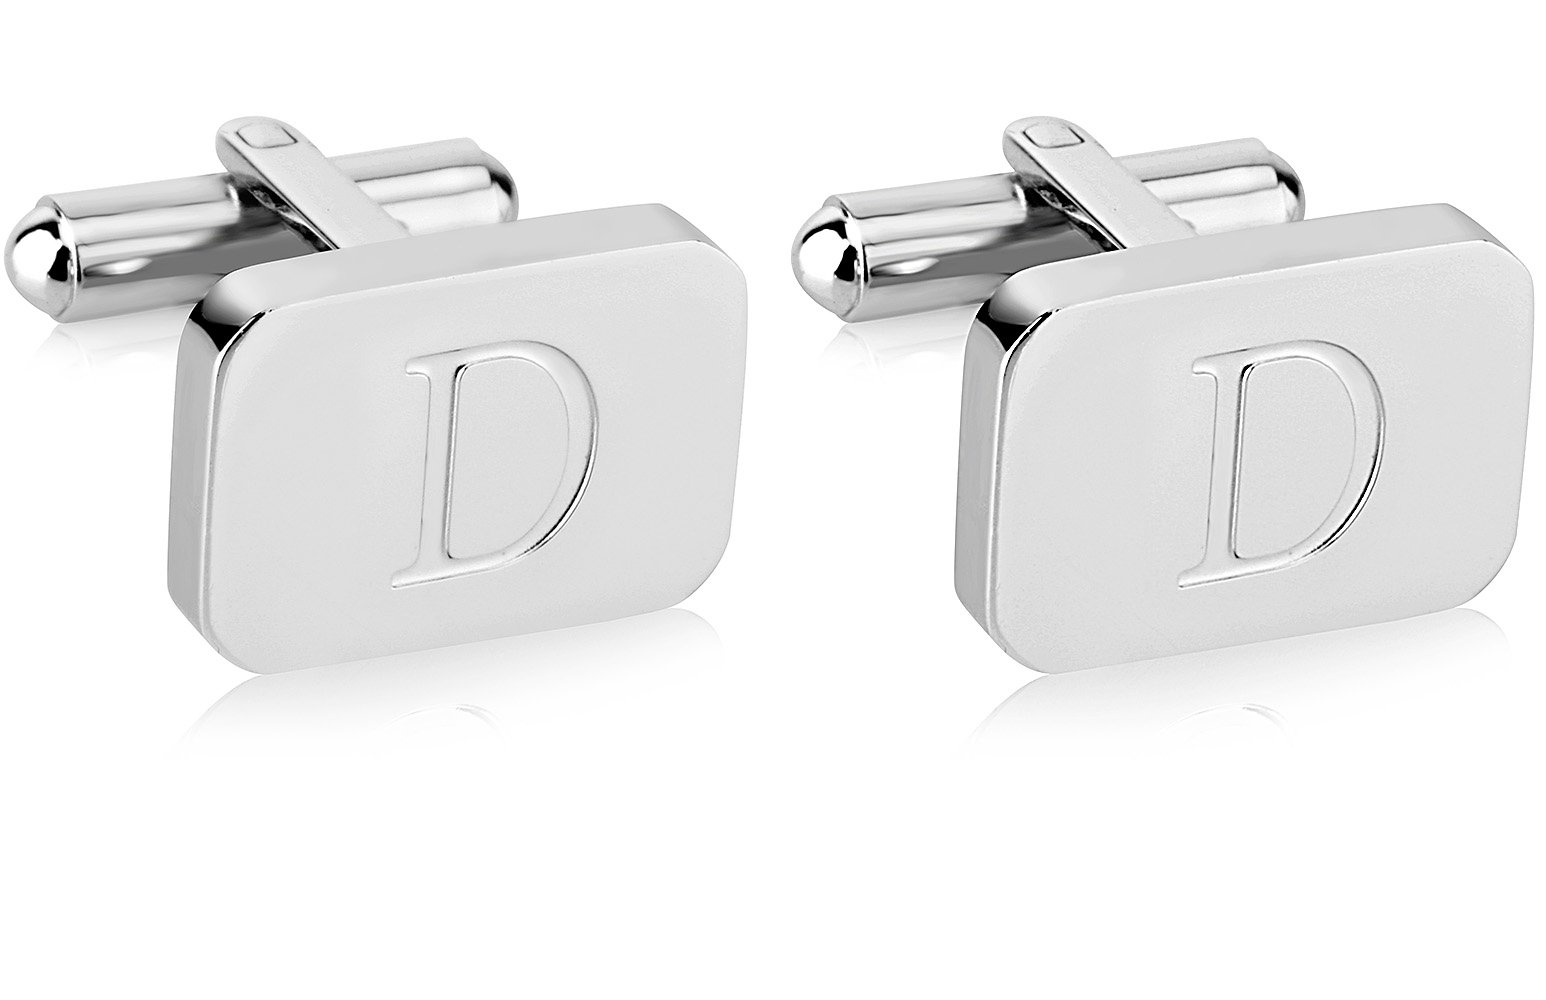 White-Gold Plated Monogram Initial Engraved Stainless Steel Man's Cufflinks With Gift Box -Personalized Alphabet Letter's By Lux & Pier (D- White Gold)